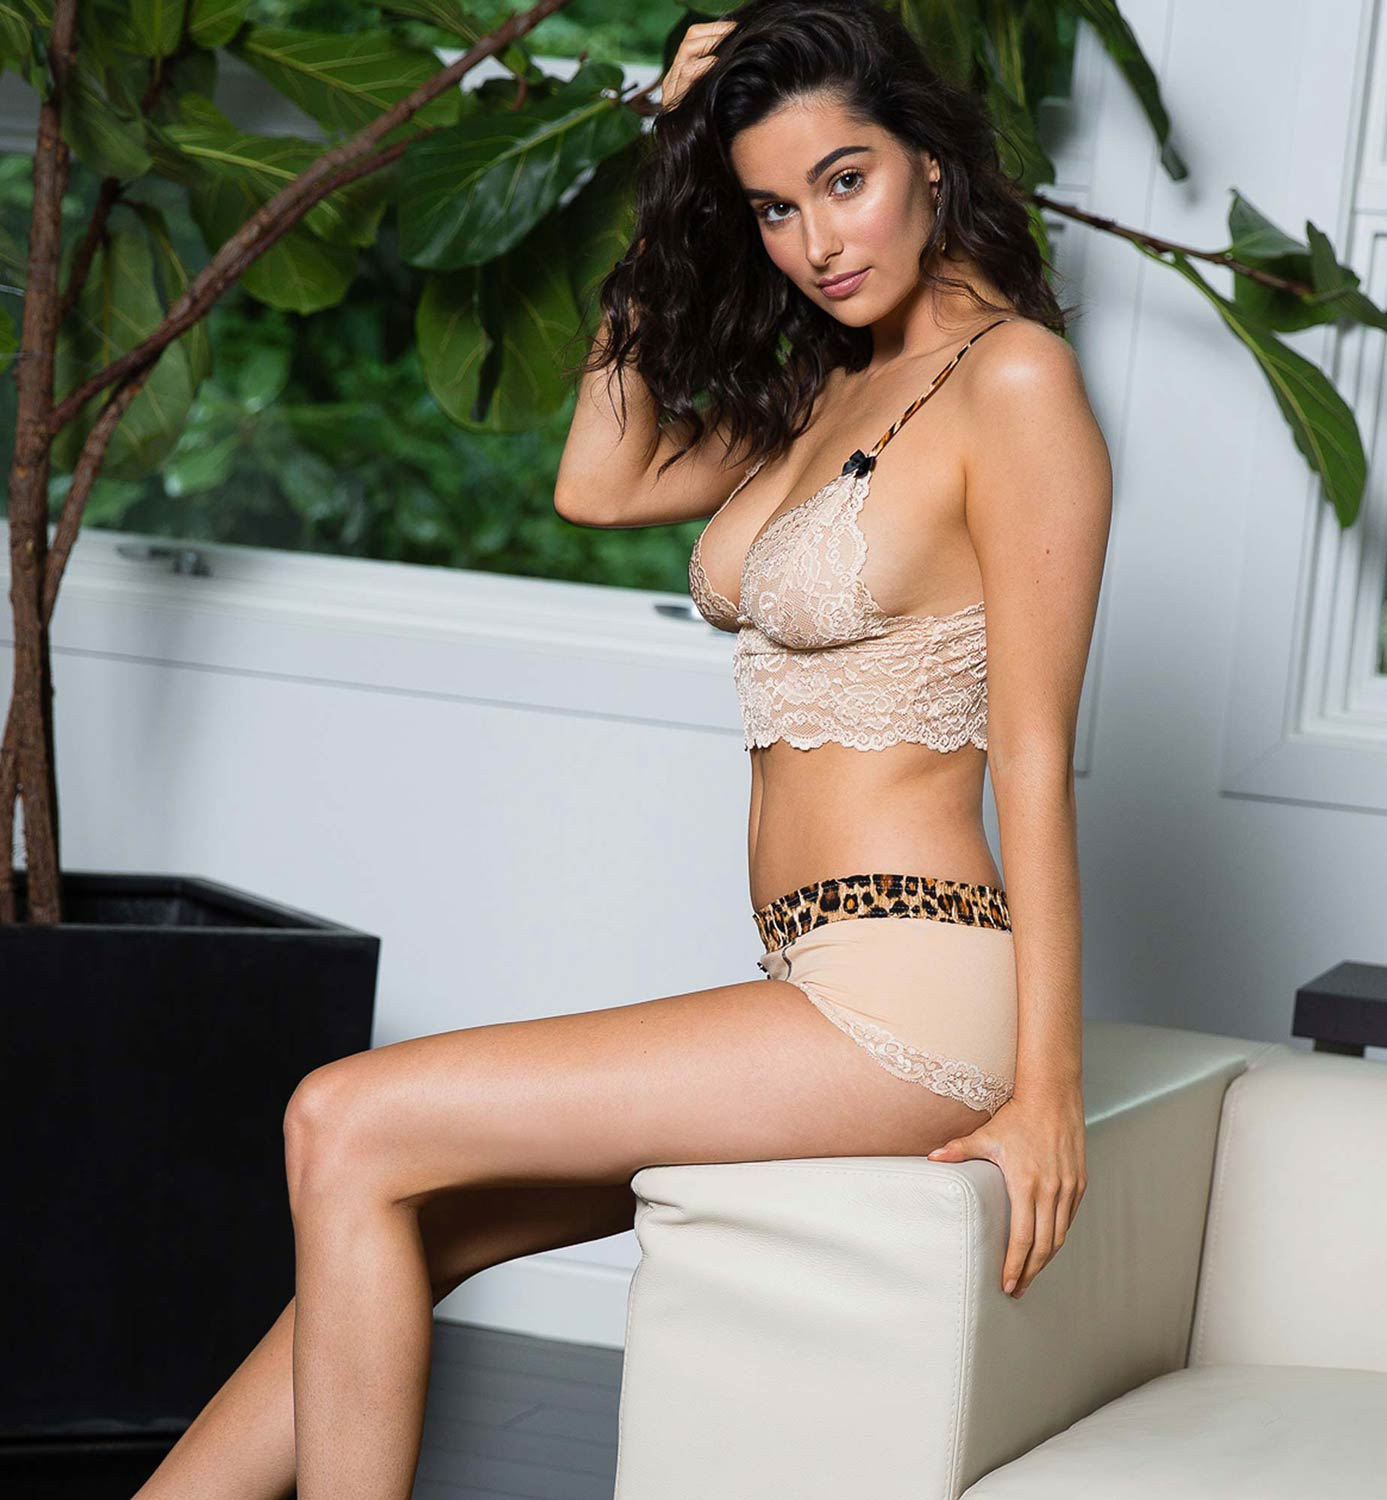 Stephy in Nude Lace Boxers with Leopard Waistband and matching Lace Bralette